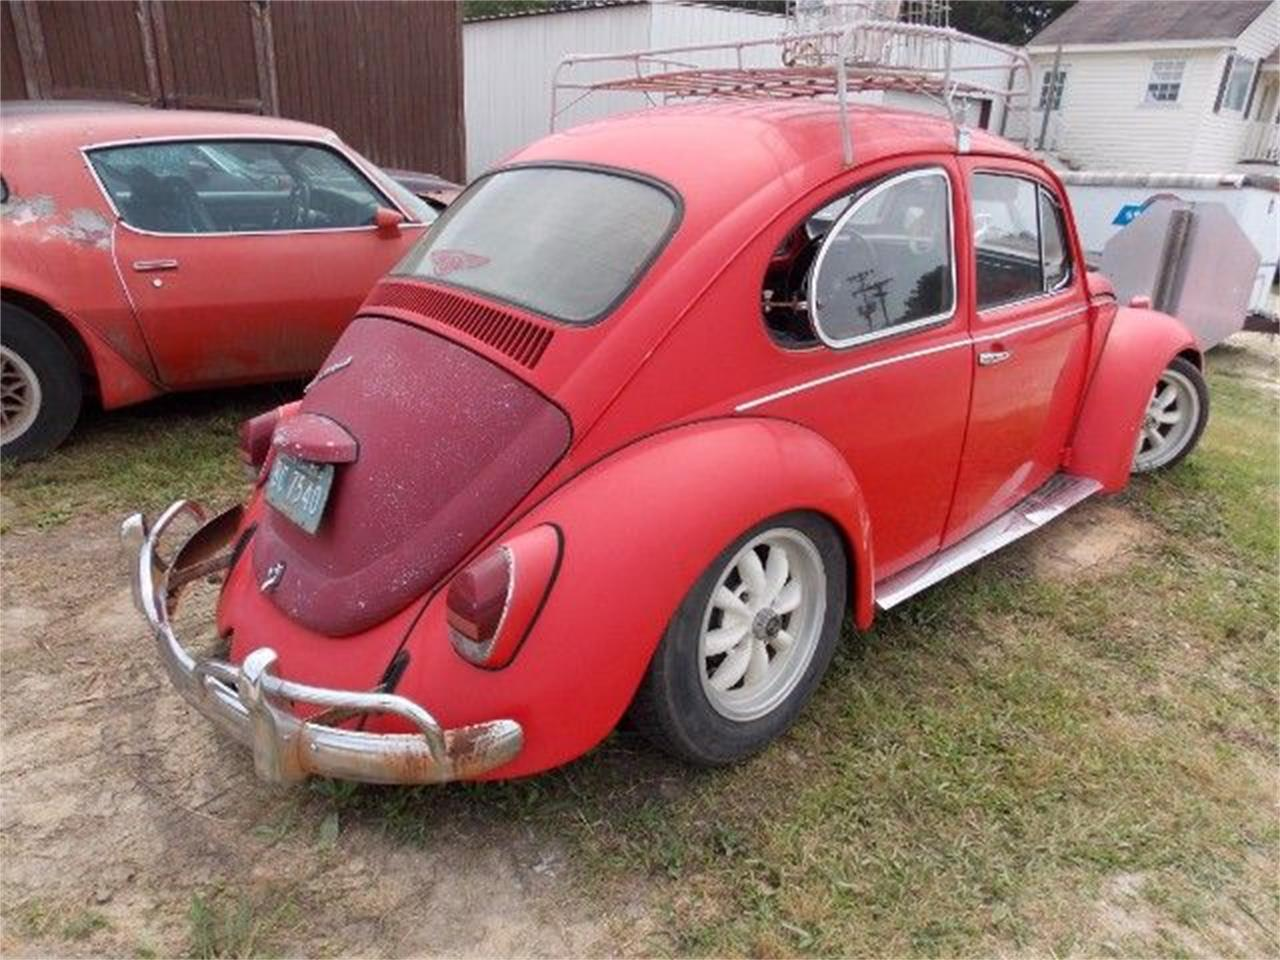 Large Picture of '69 Volkswagen Beetle - $7,495.00 Offered by Classic Car Deals - P7YD